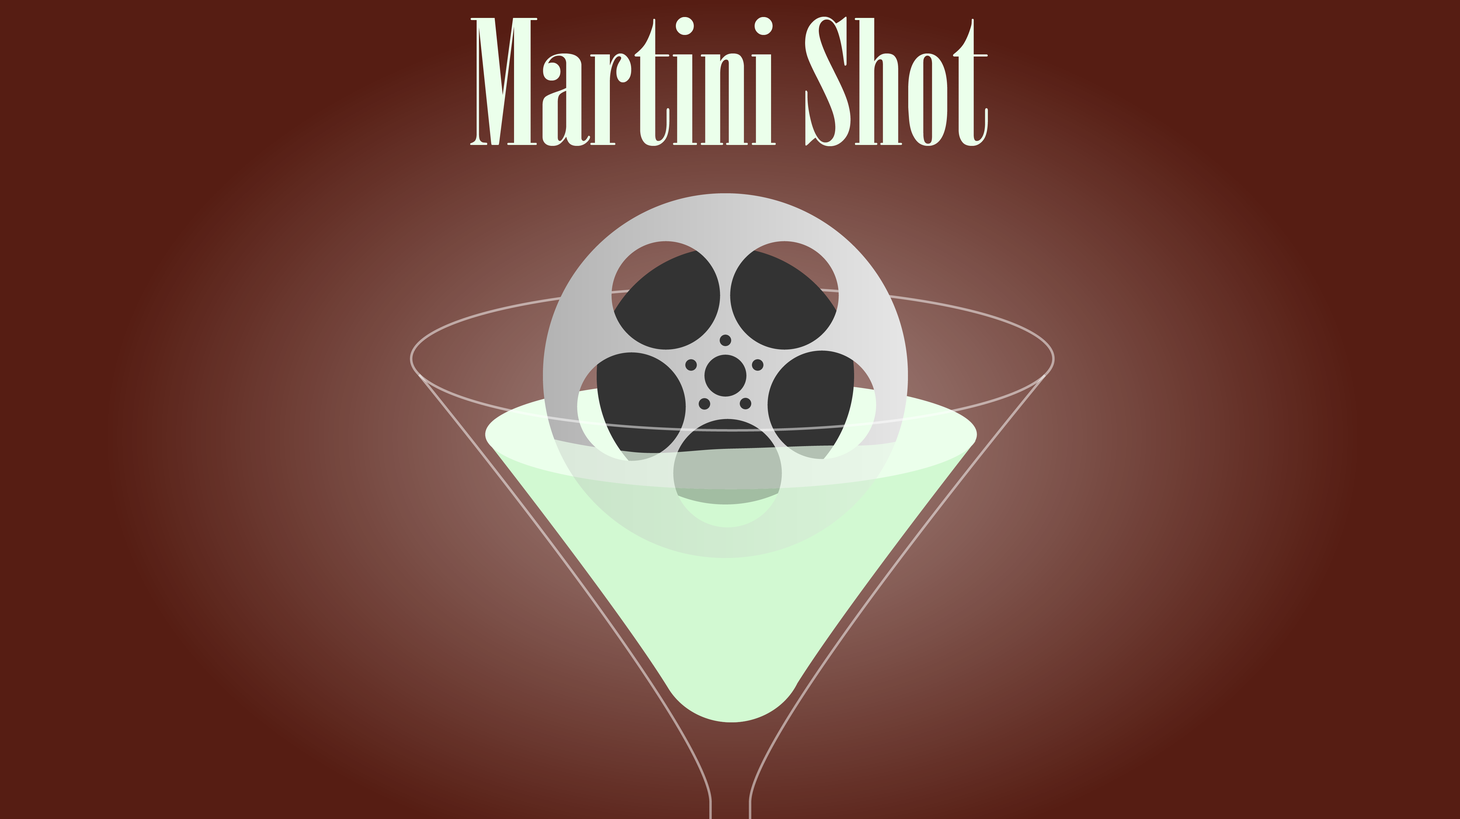 This is Rob Long and on today's Martini Shot I try to explain why the most successful companies in the entertainment business are like the concession stand at the movie theater. You're not selling the movie. You're selling the Mild Duds.